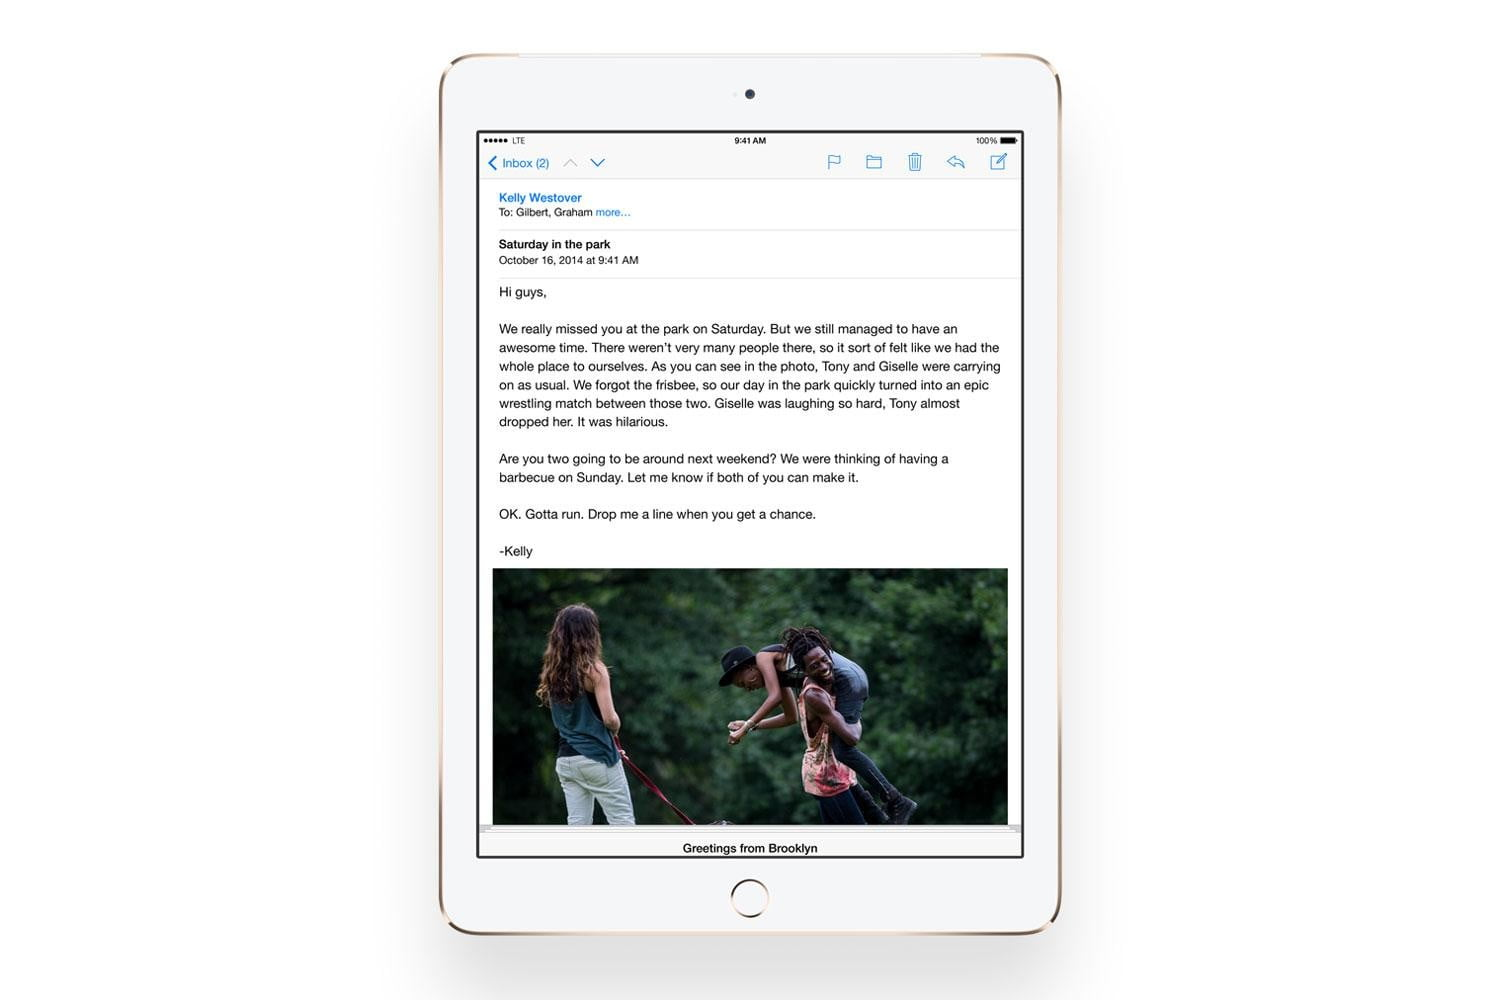 apple ipad air 2 mini 3 launch event news email press image